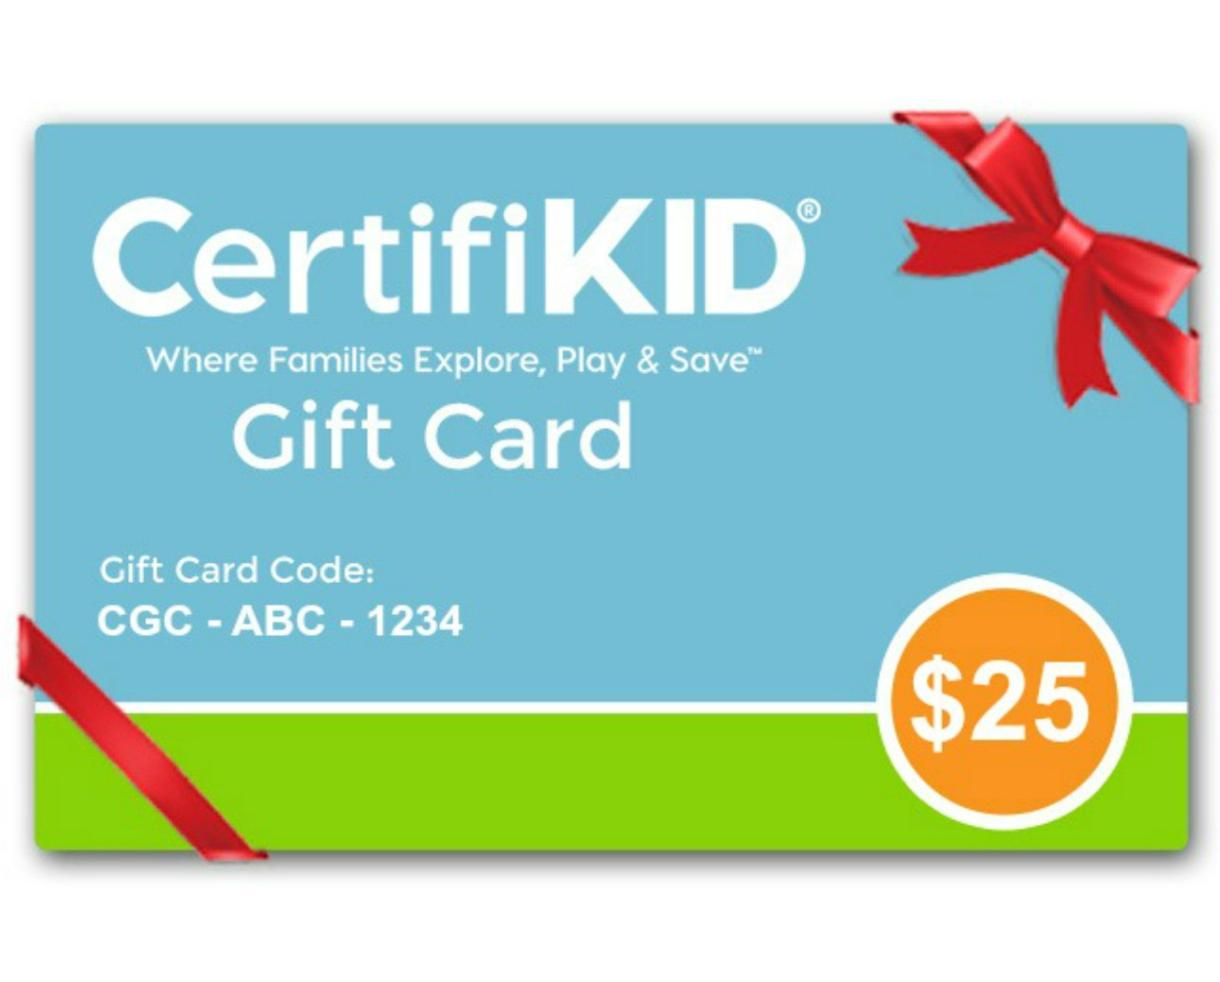 Give the Gift of FAMILY FUN This Holiday Season with a CertifiKID GIFT CARD!